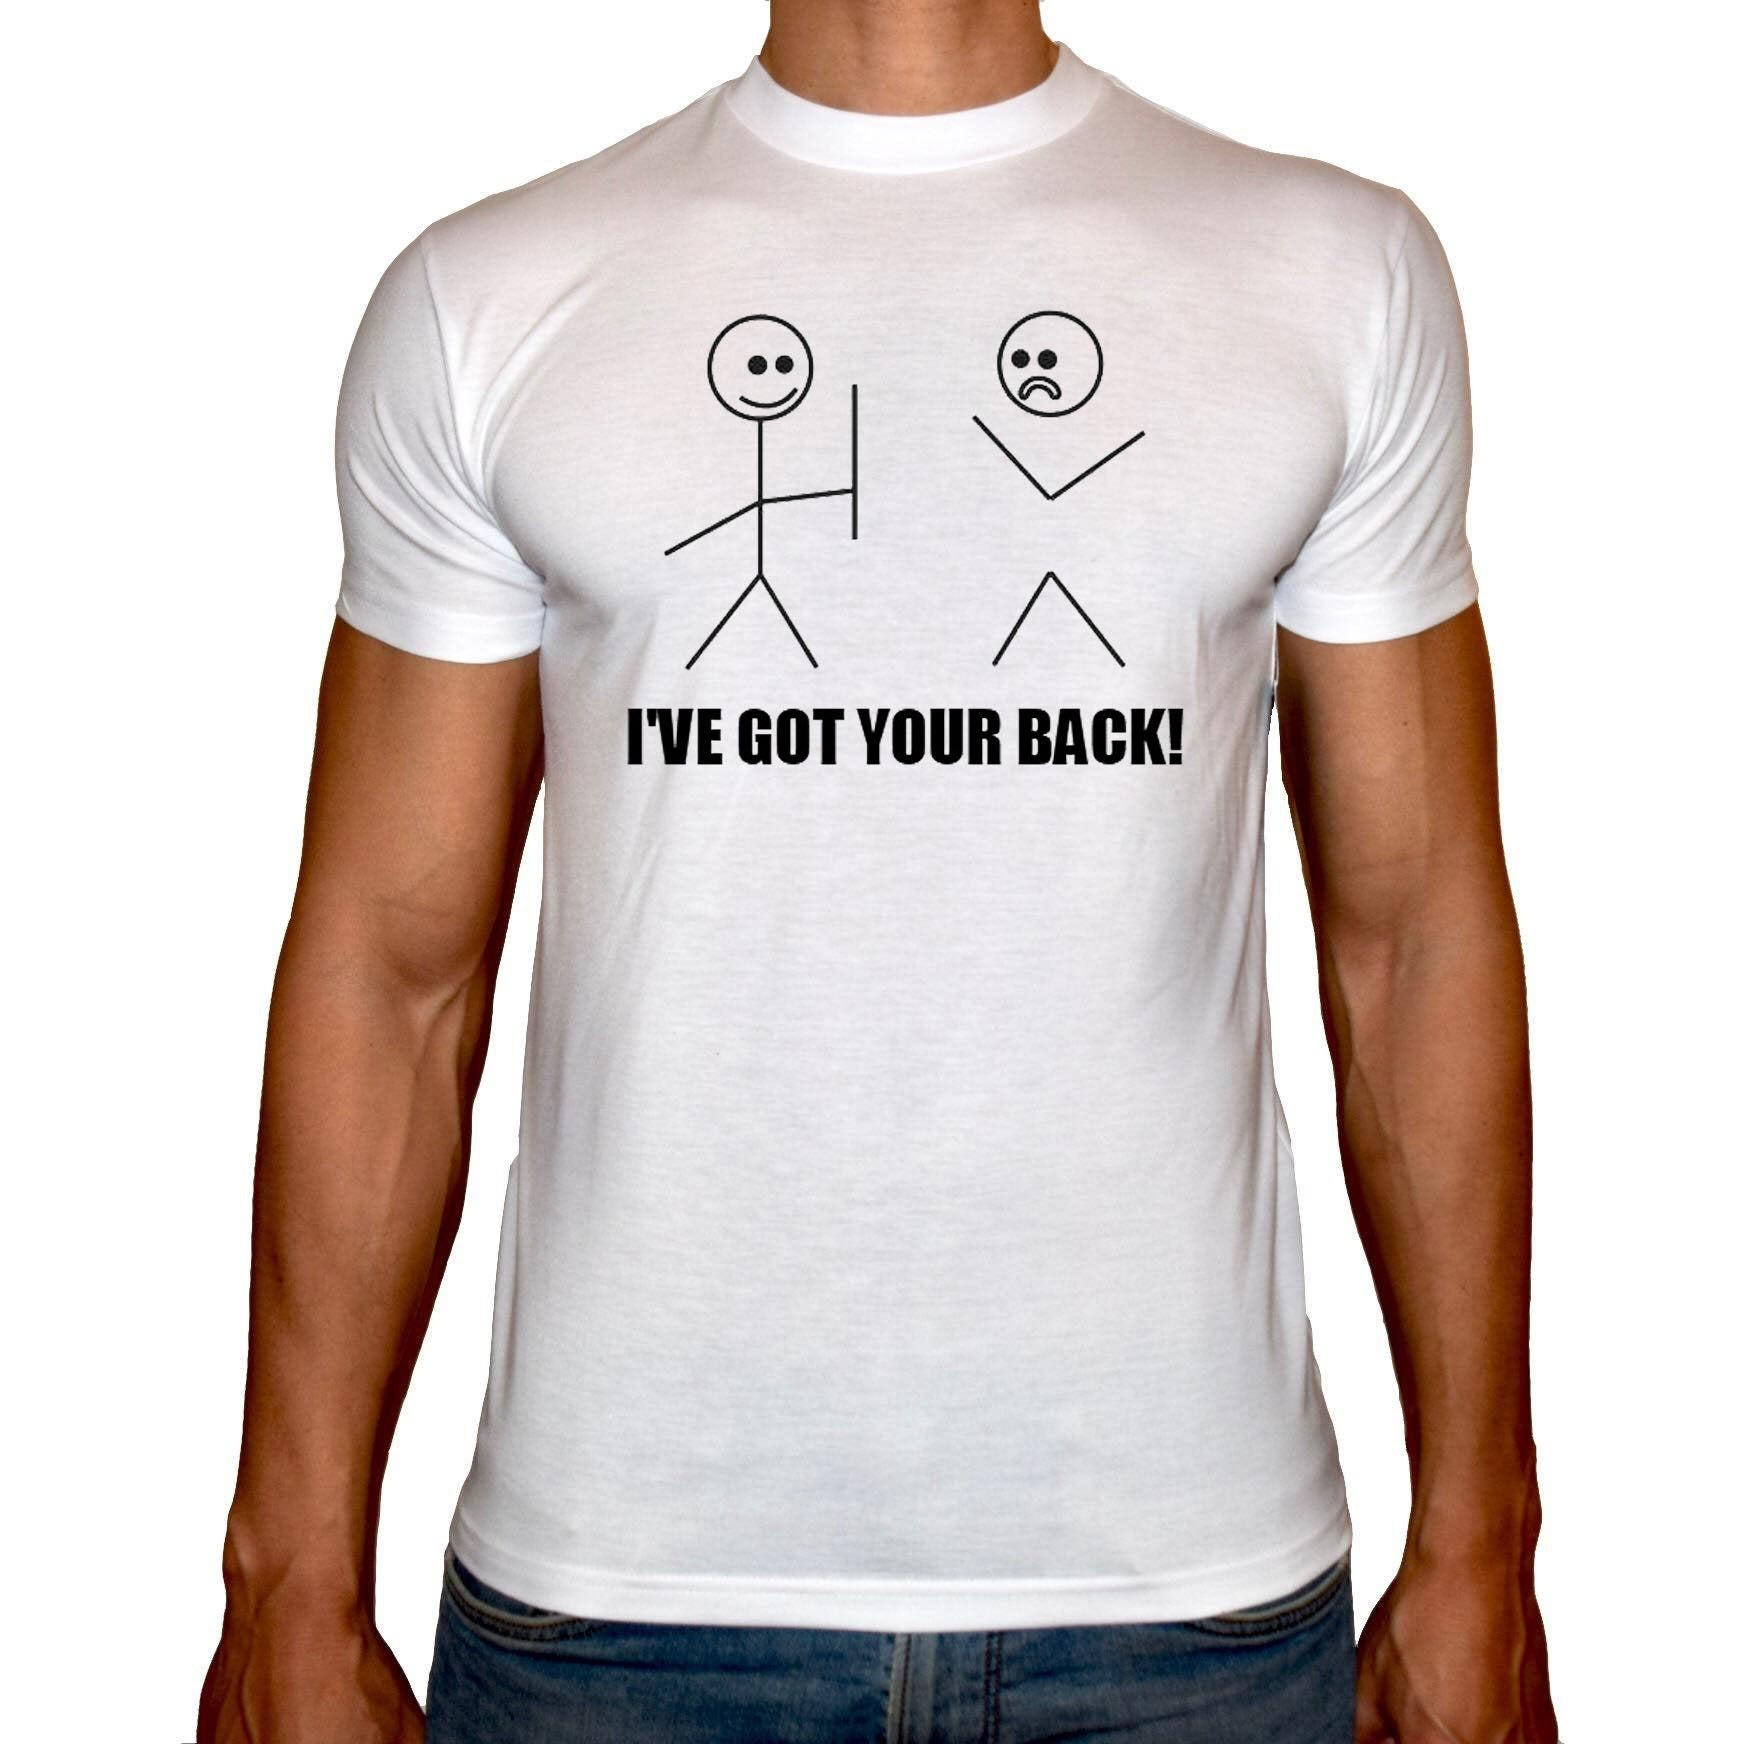 Phoenix WHITE Round Neck Printed Shirt Men (Got your back)